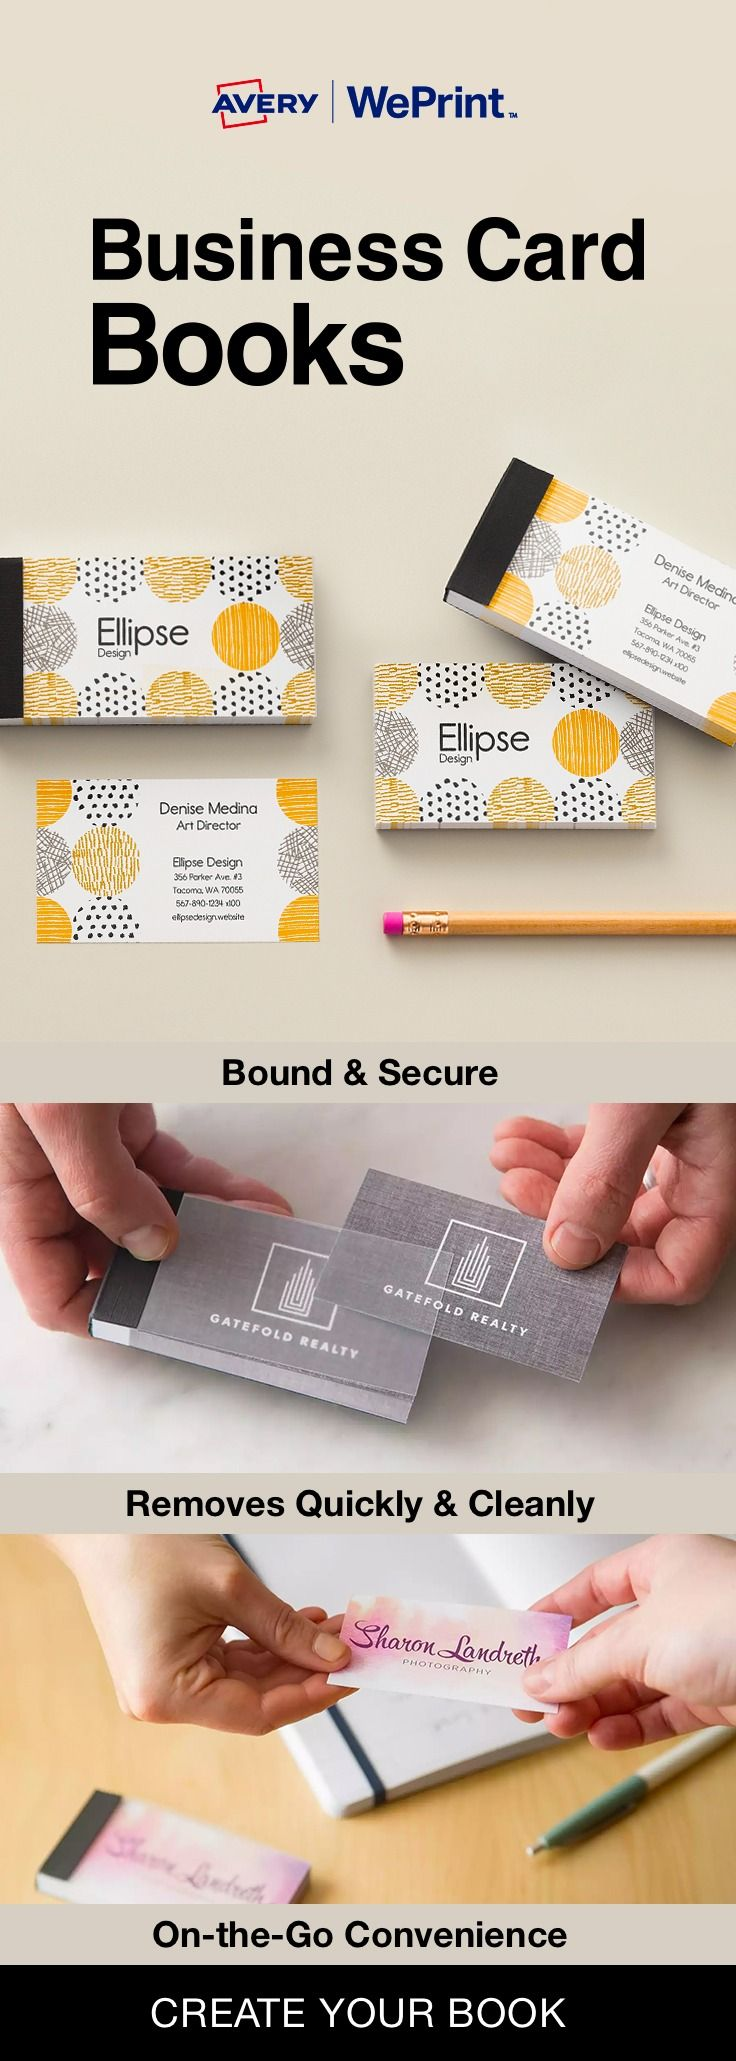 52 best Avery WePrint images on Pinterest | Landing, Soaps and Cards